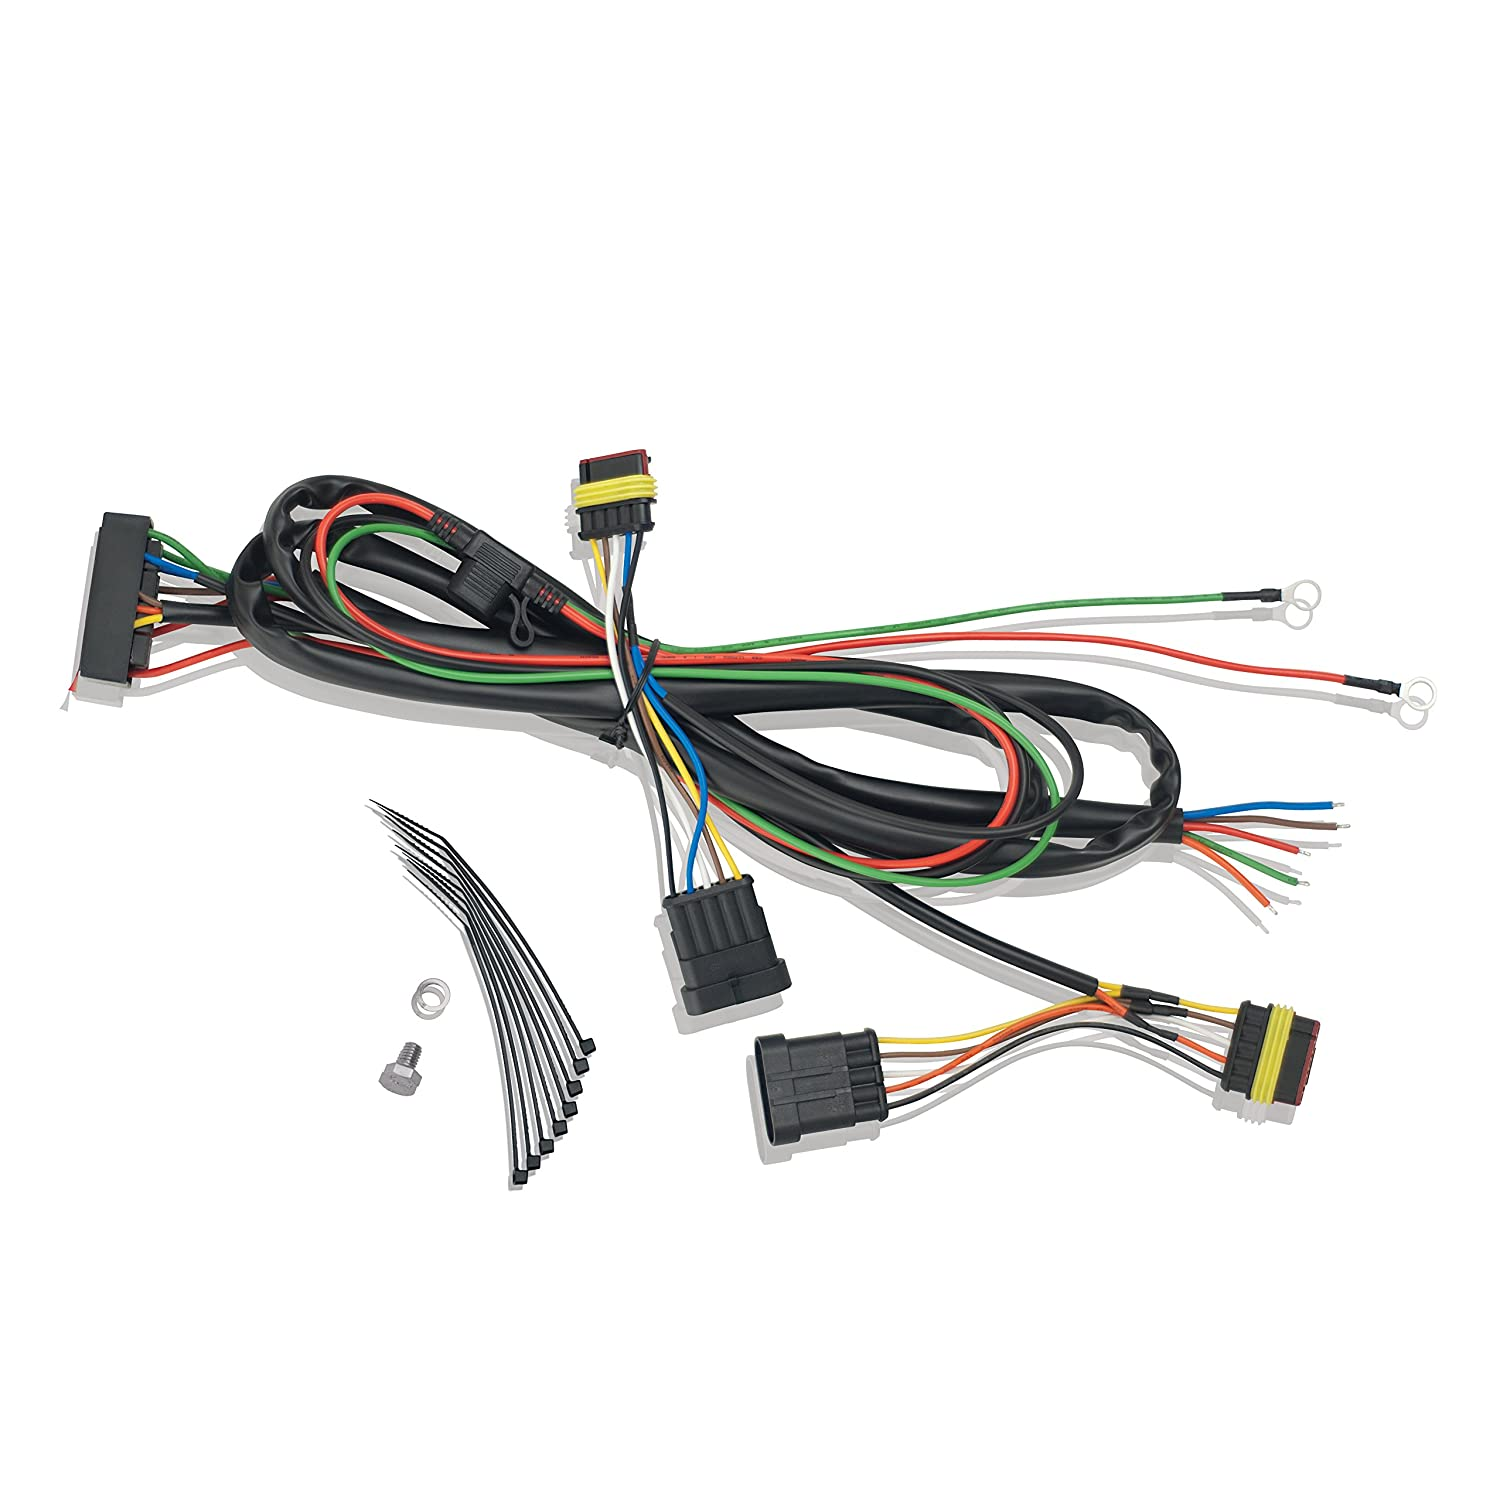 81dZHpG1lCL._SL1500_ amazon com show chrome accessories 41 162 trailer wire harness Wiring Harness Connectors at fashall.co